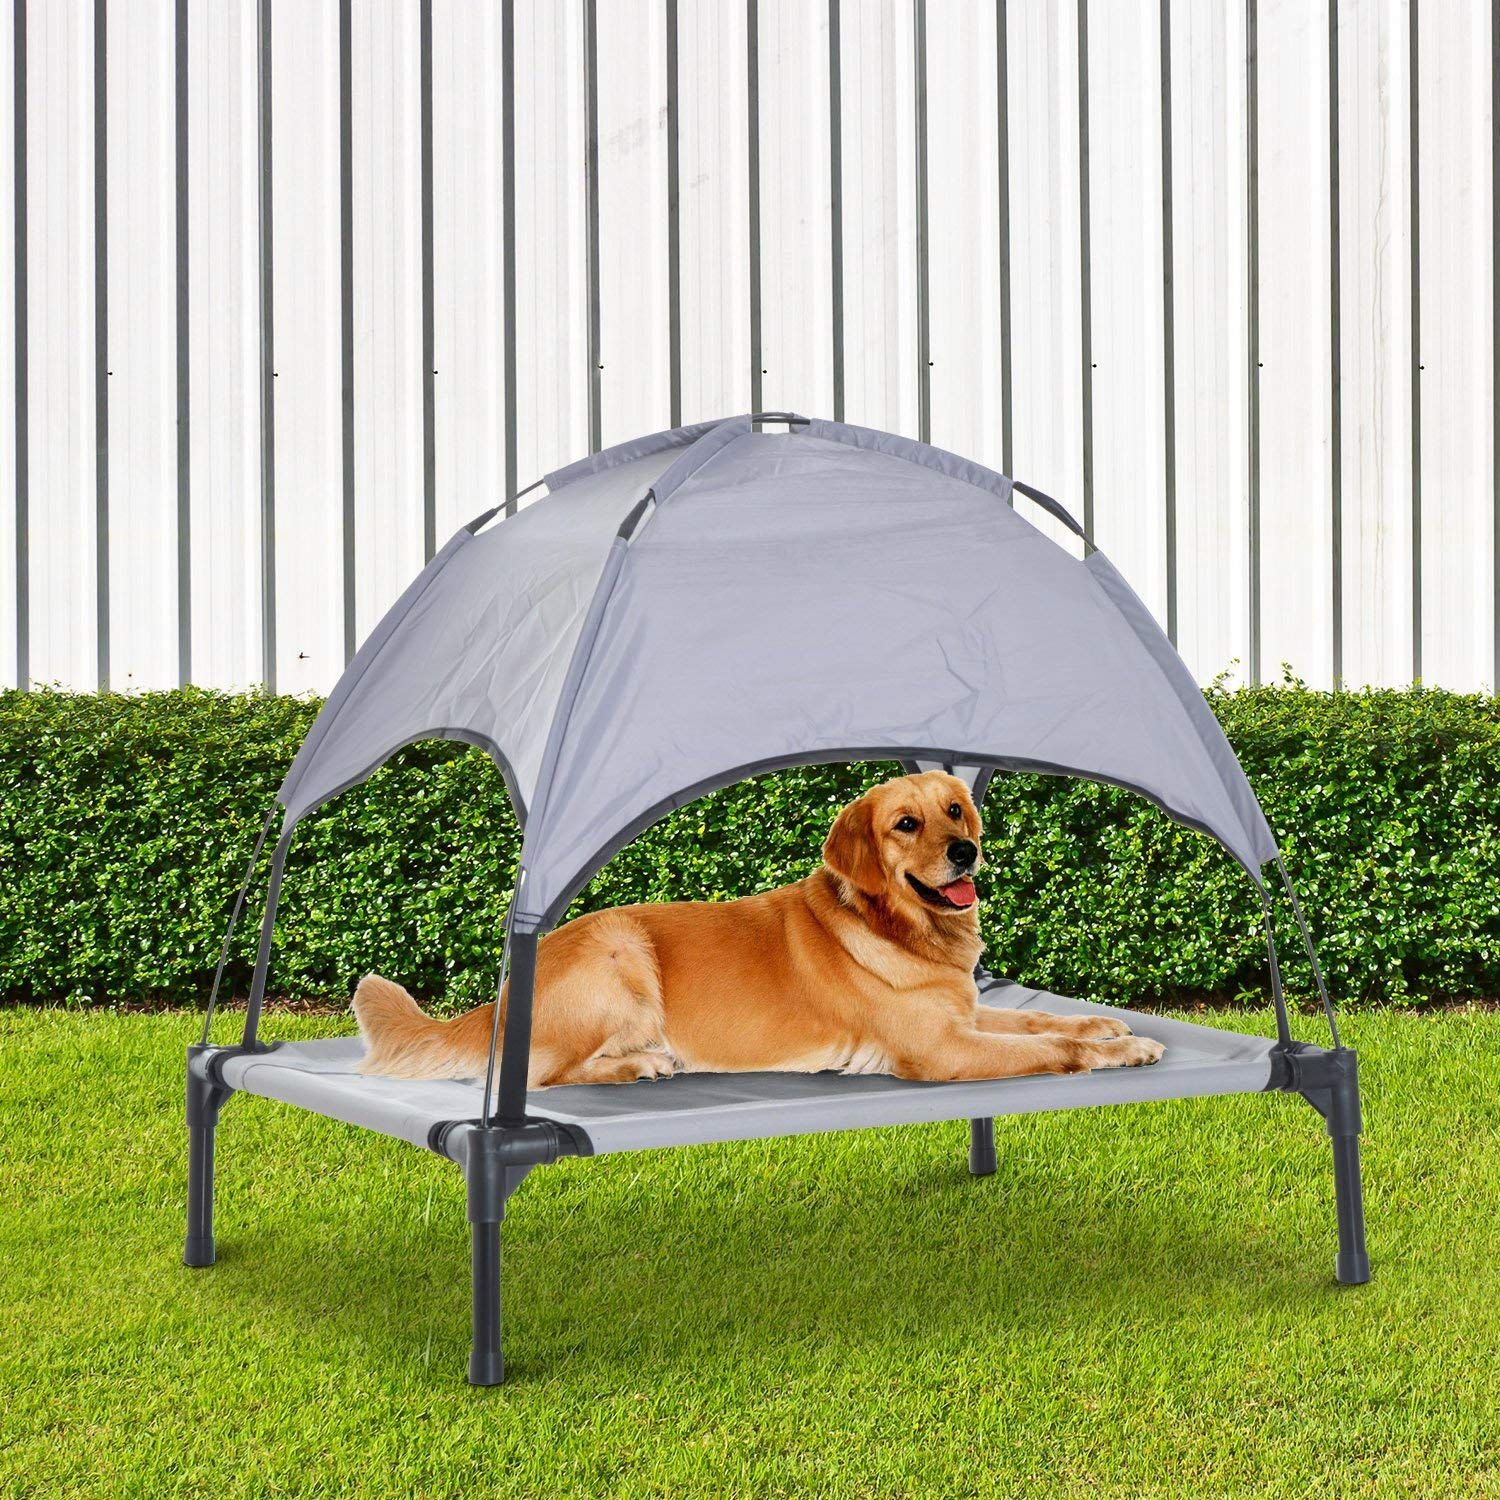 Festnight Elevated Cooling Pet Dog Bed Cot with Canopy